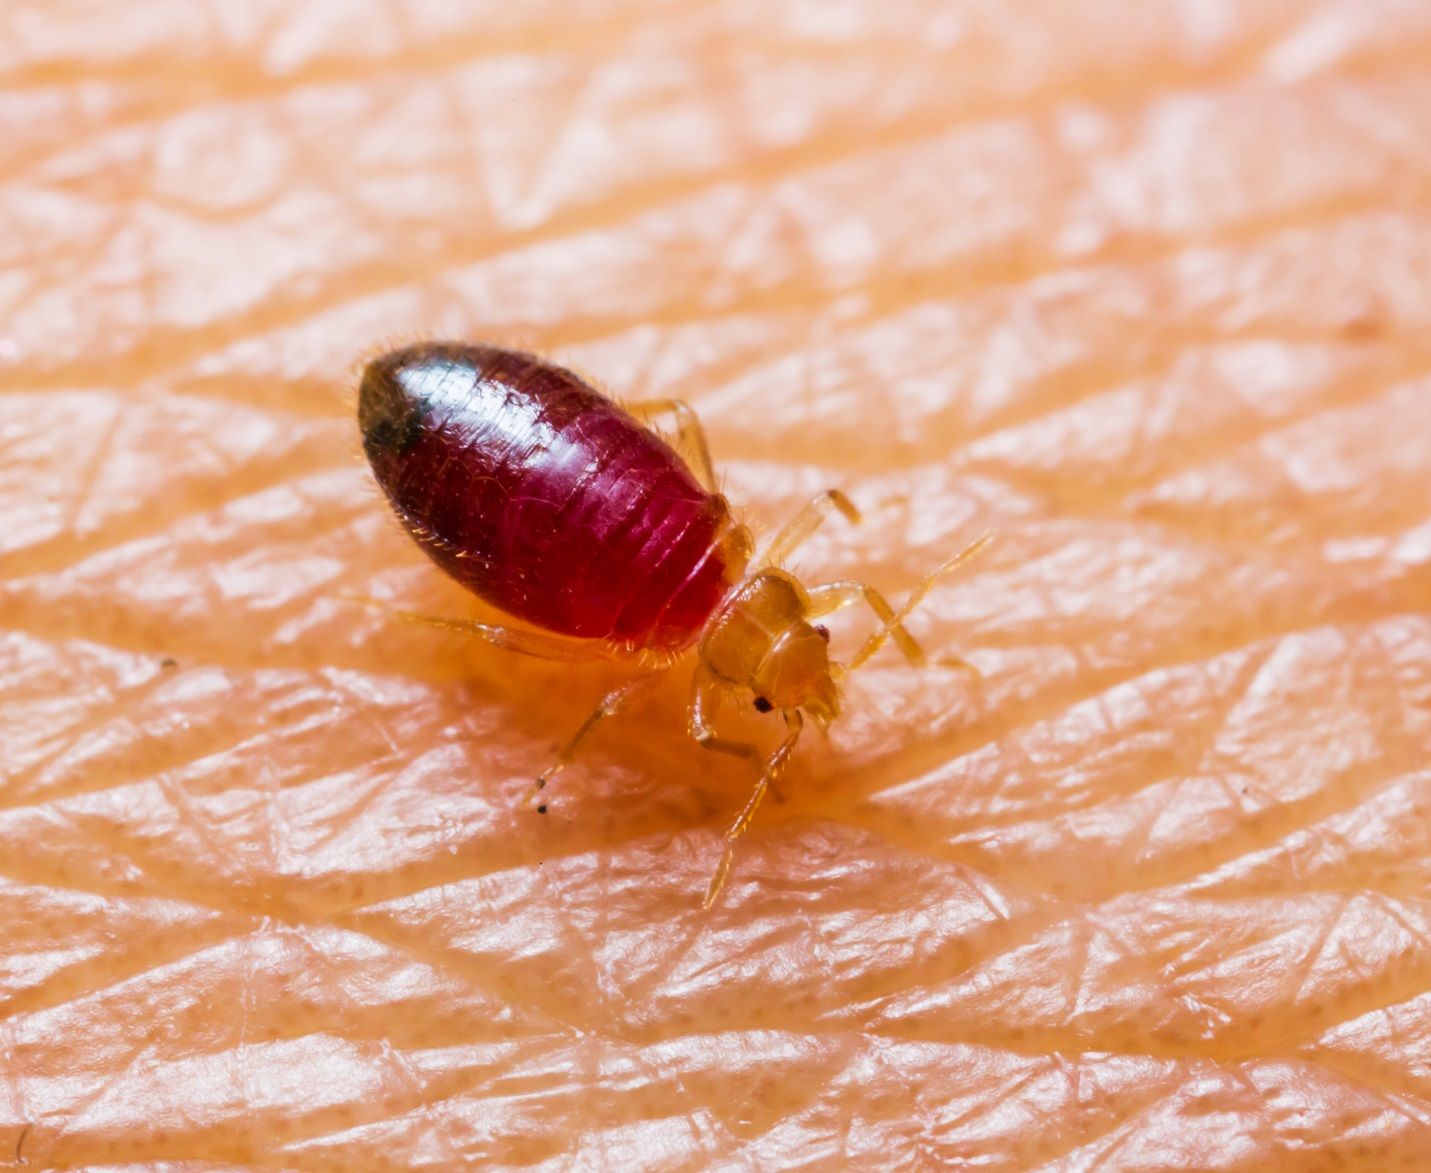 BABY BEDBUGS, WHAT DO BABY BEDBUGS LOOK LIKE